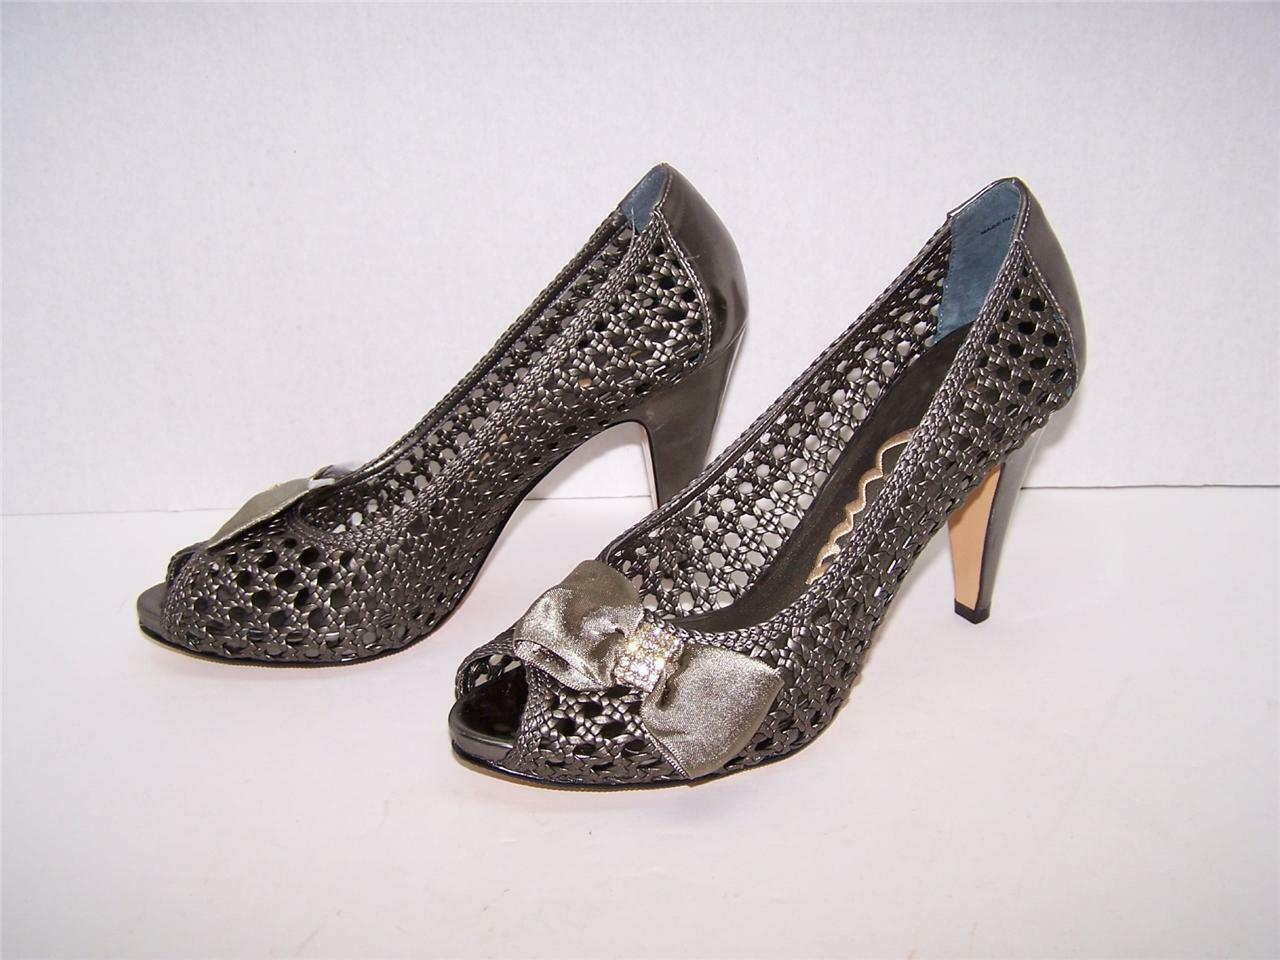 Nina New Pewter Leather Weave Rhinestone Open Toe Heels Evening Dress Shoes 8